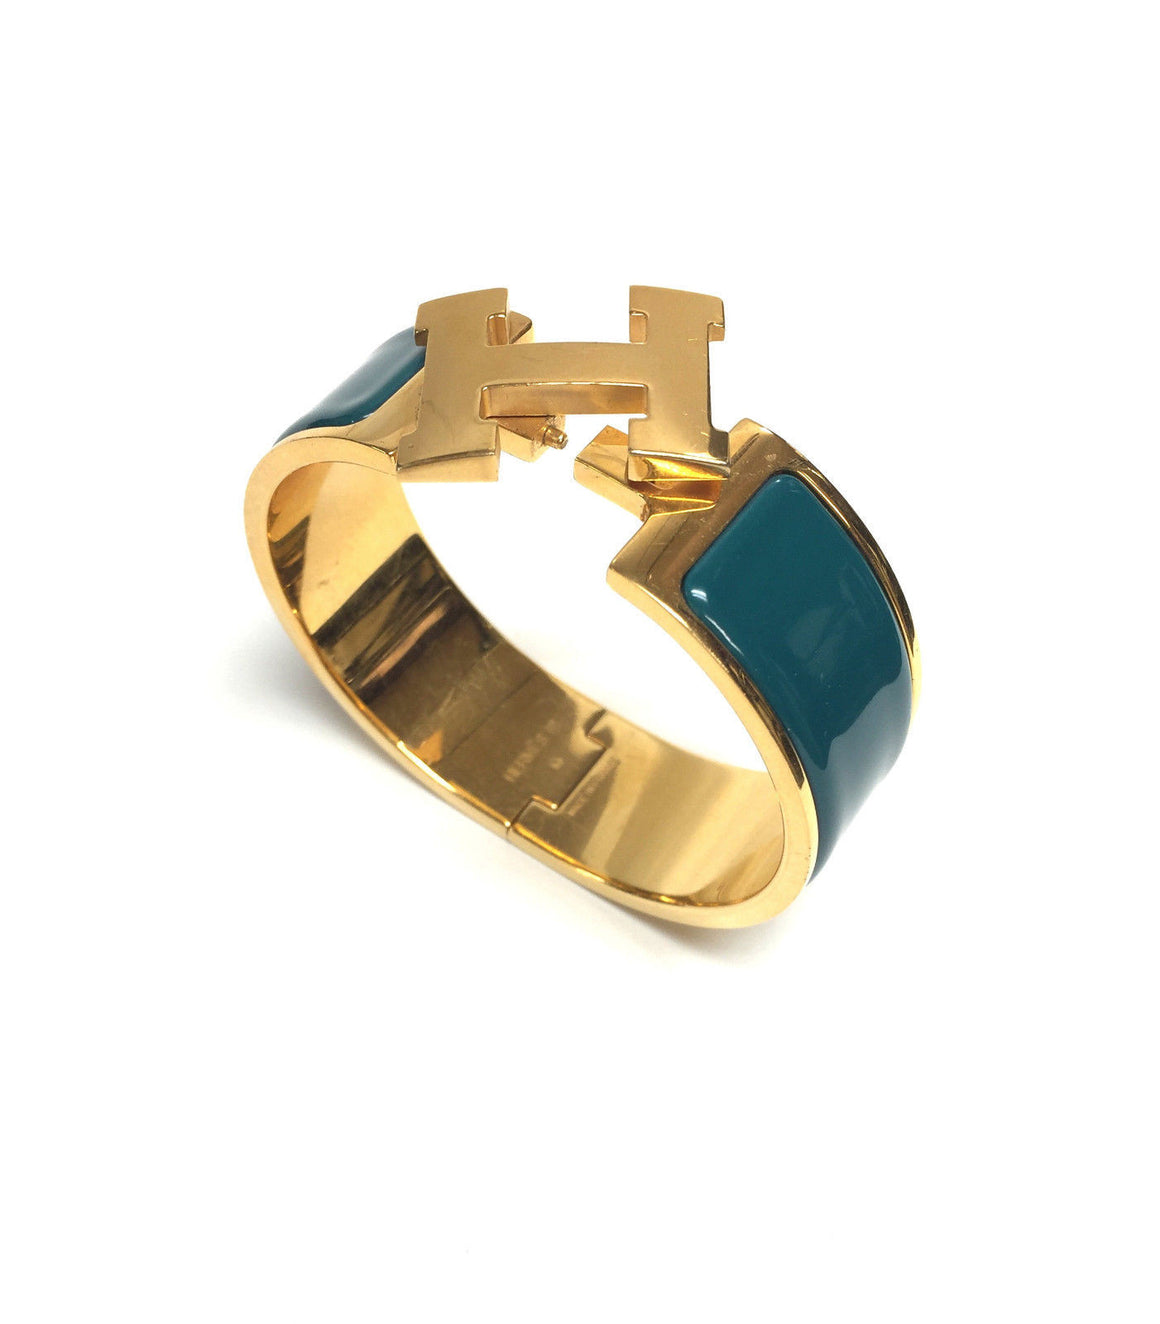 bisbiz.com HERMES Gilt-Metal Verona-Green Enamel Clic-Clac Bangle Bracelet - Bis Luxury Resale